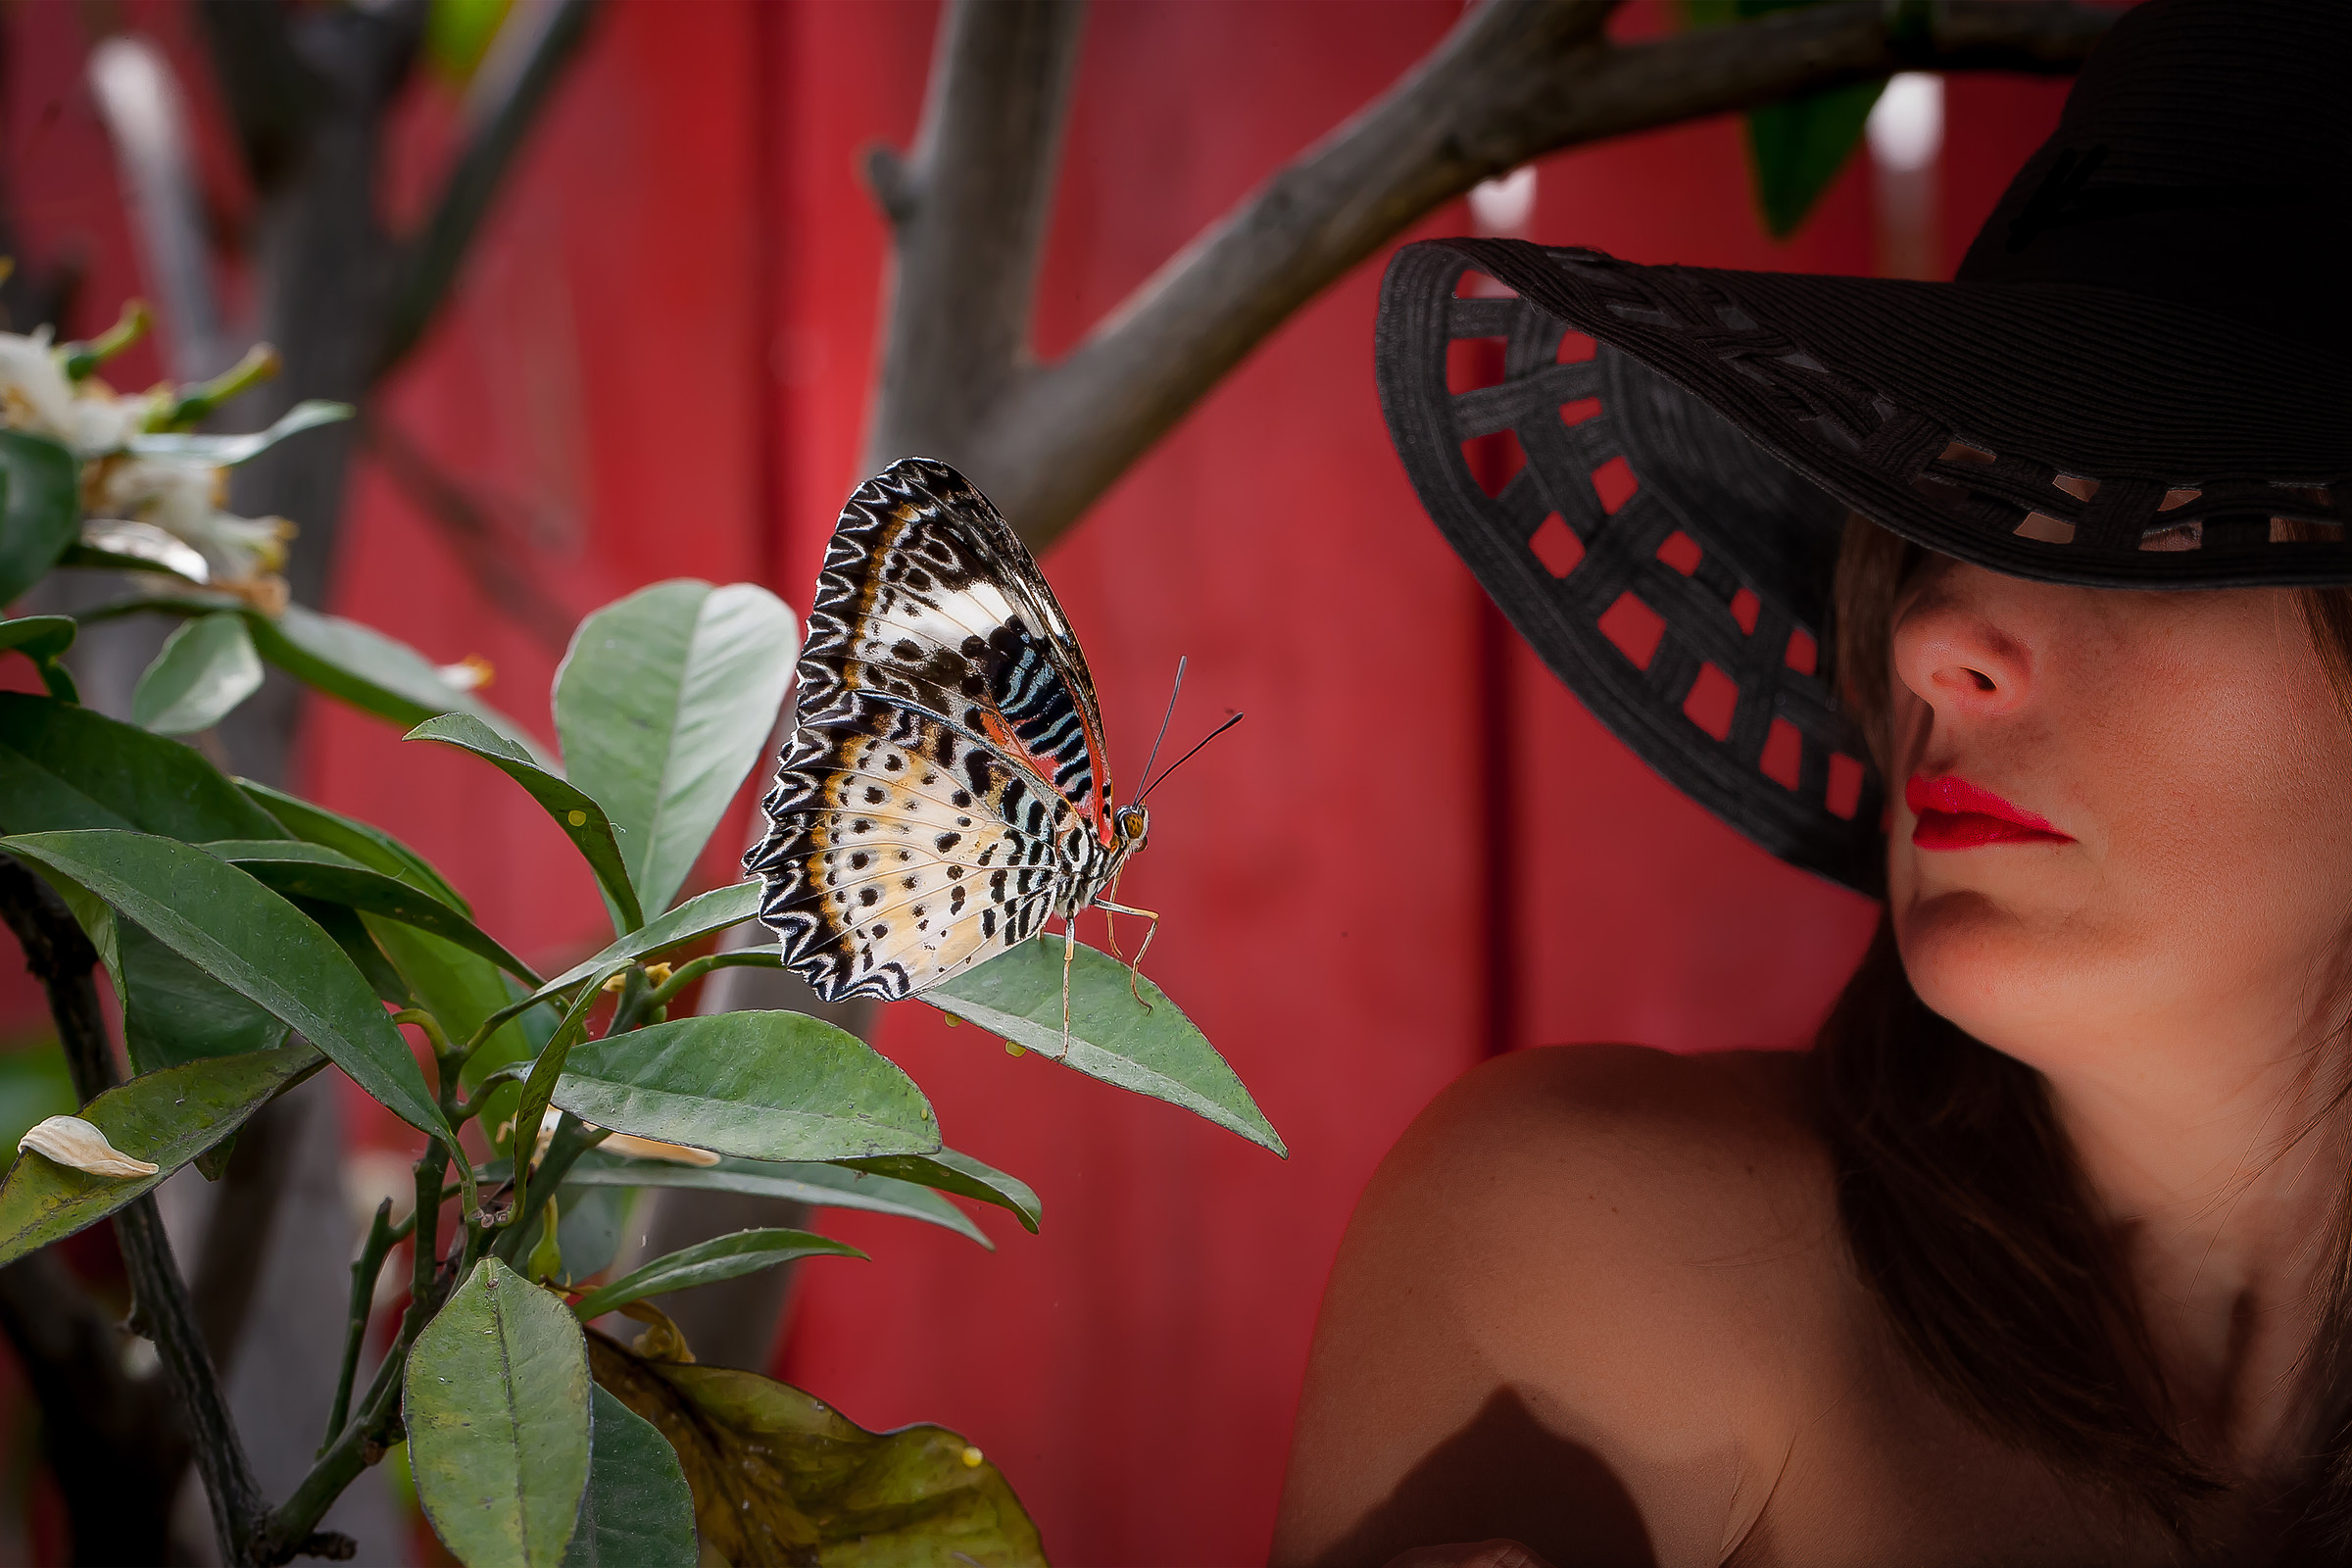 Paola and the Butterfly...